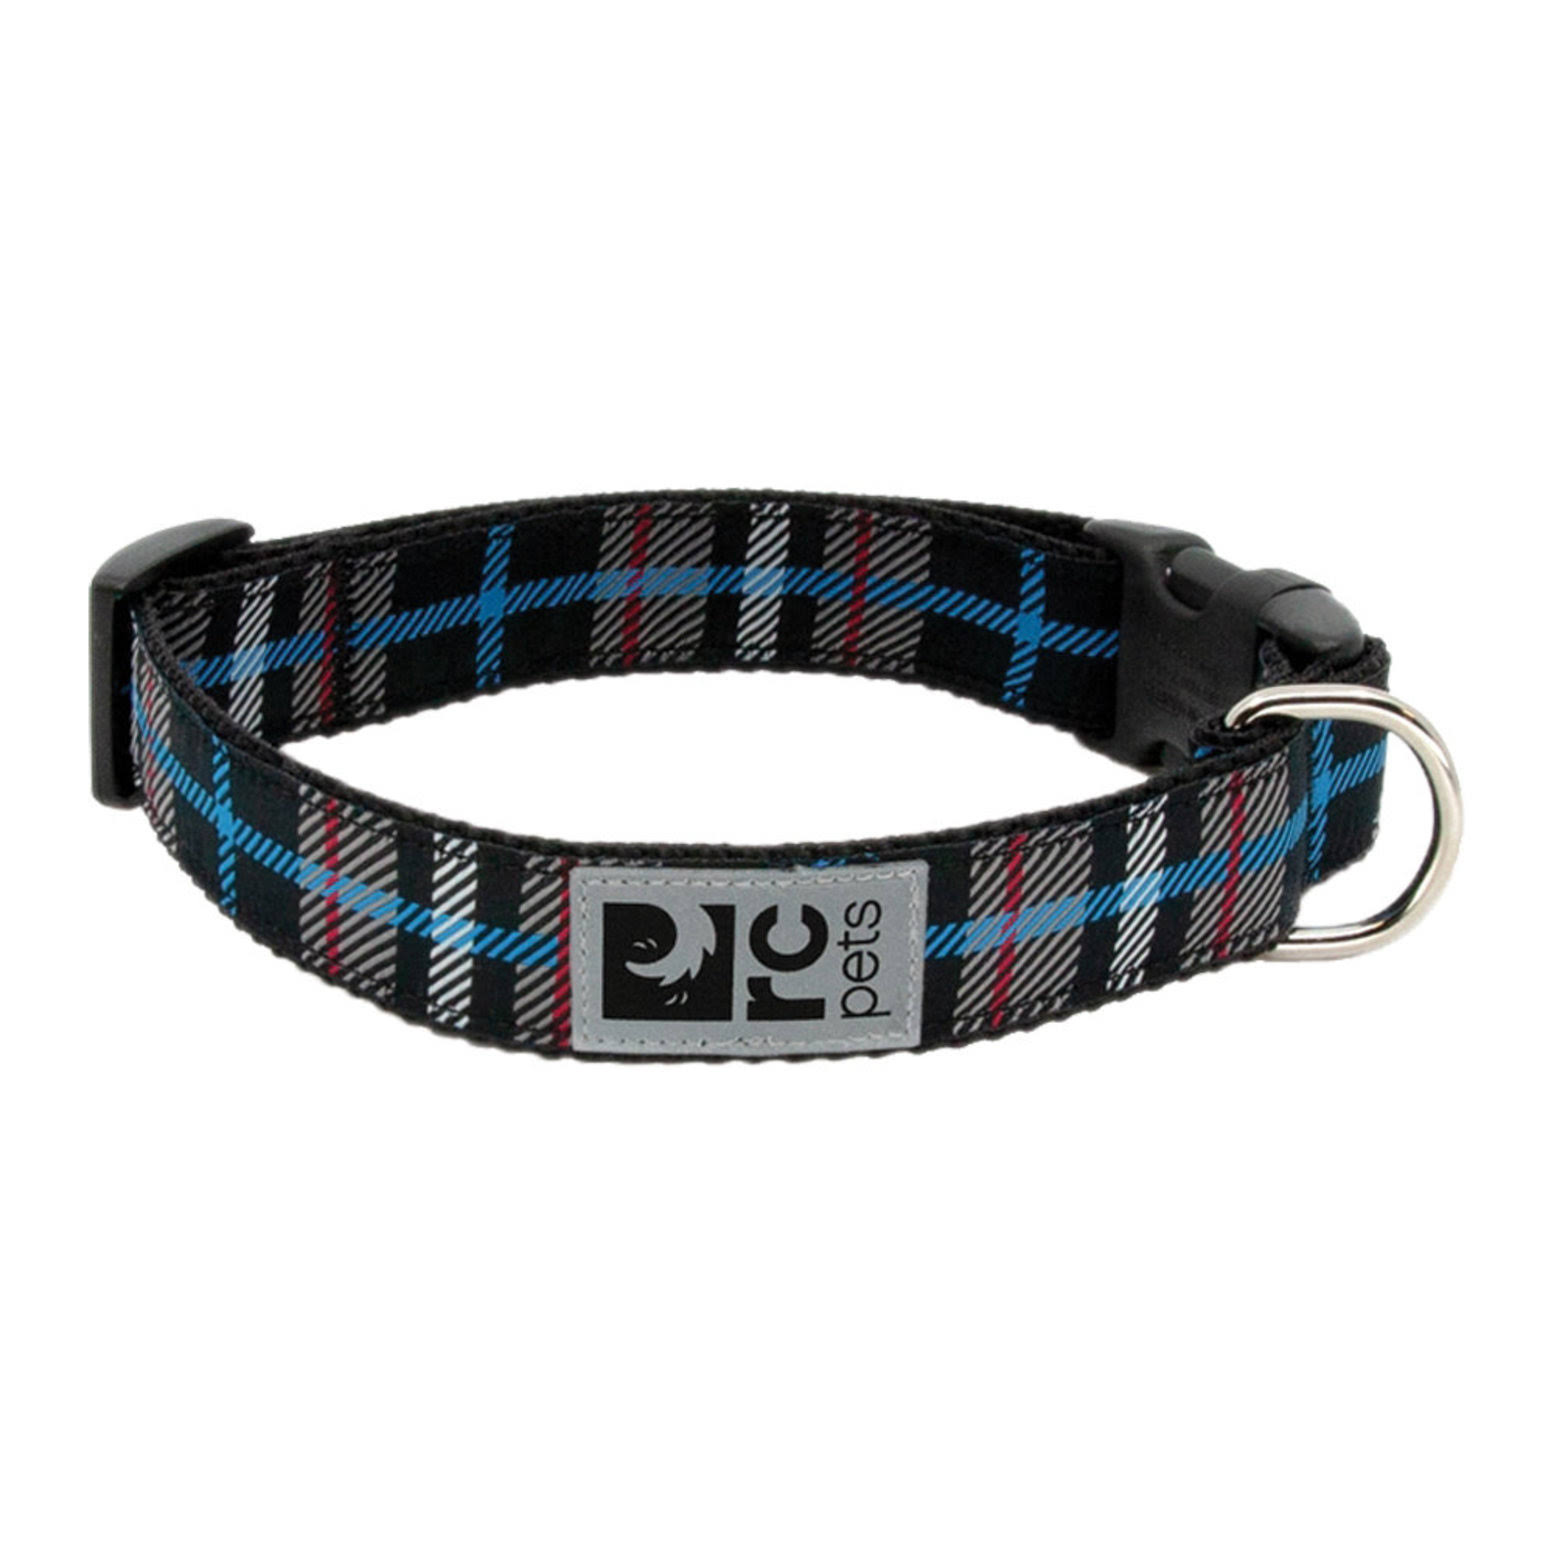 Dogo Black Twill Plaid Adjustable Clip Dog Collar by RC Pet - Small